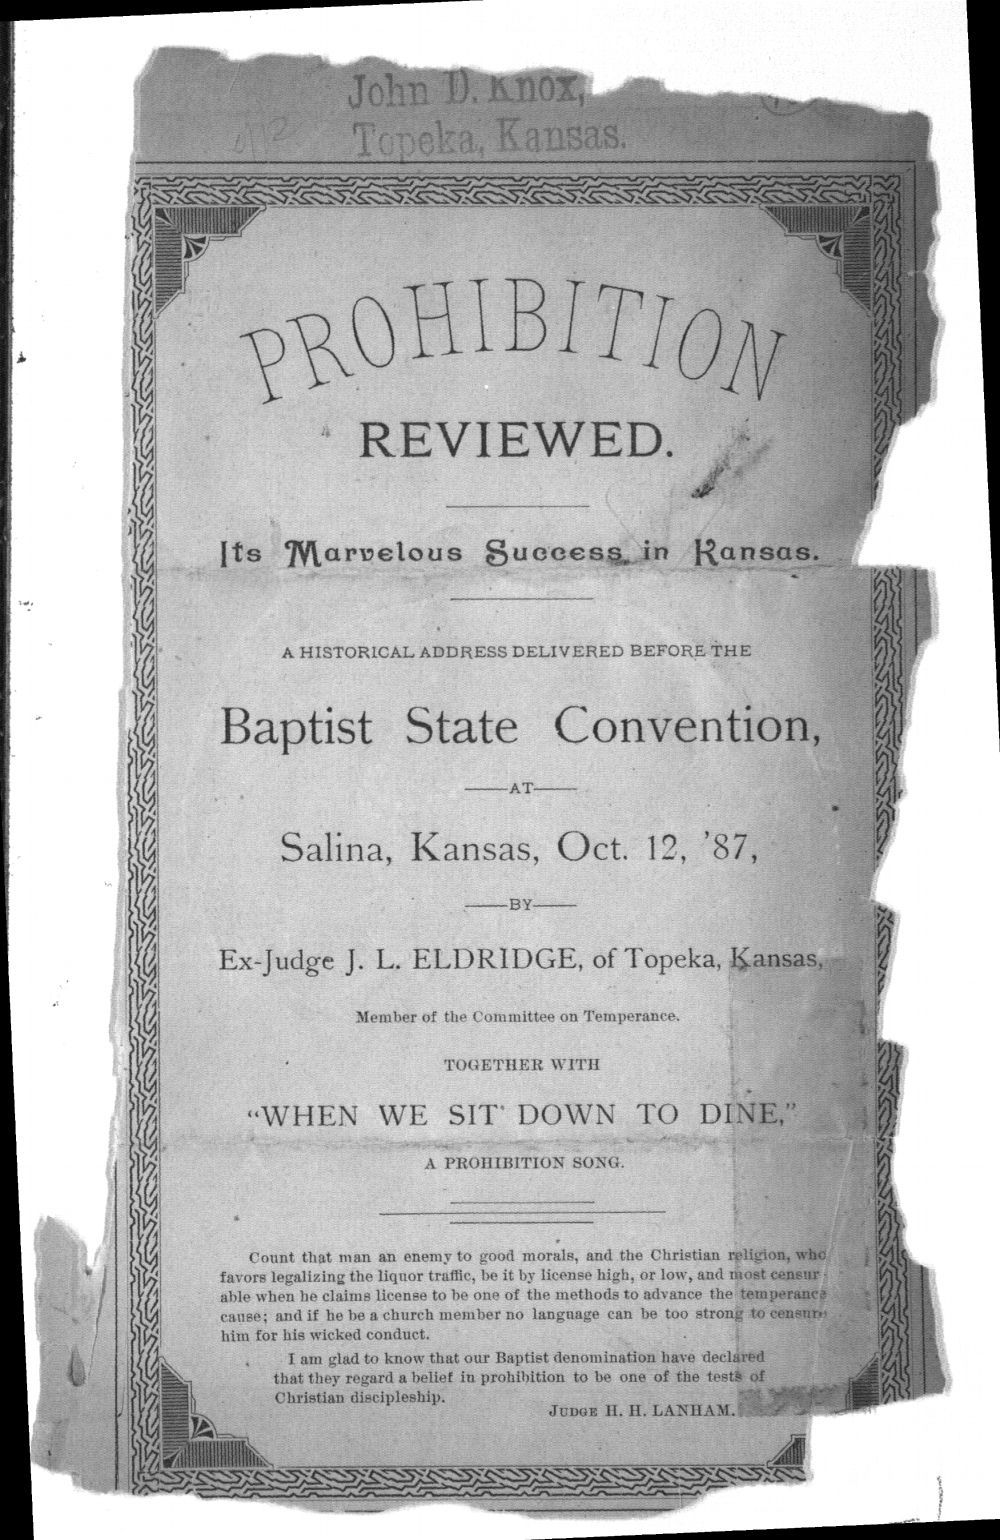 Prohibition reviewed.  Its marvelous success in Kansas. - 1